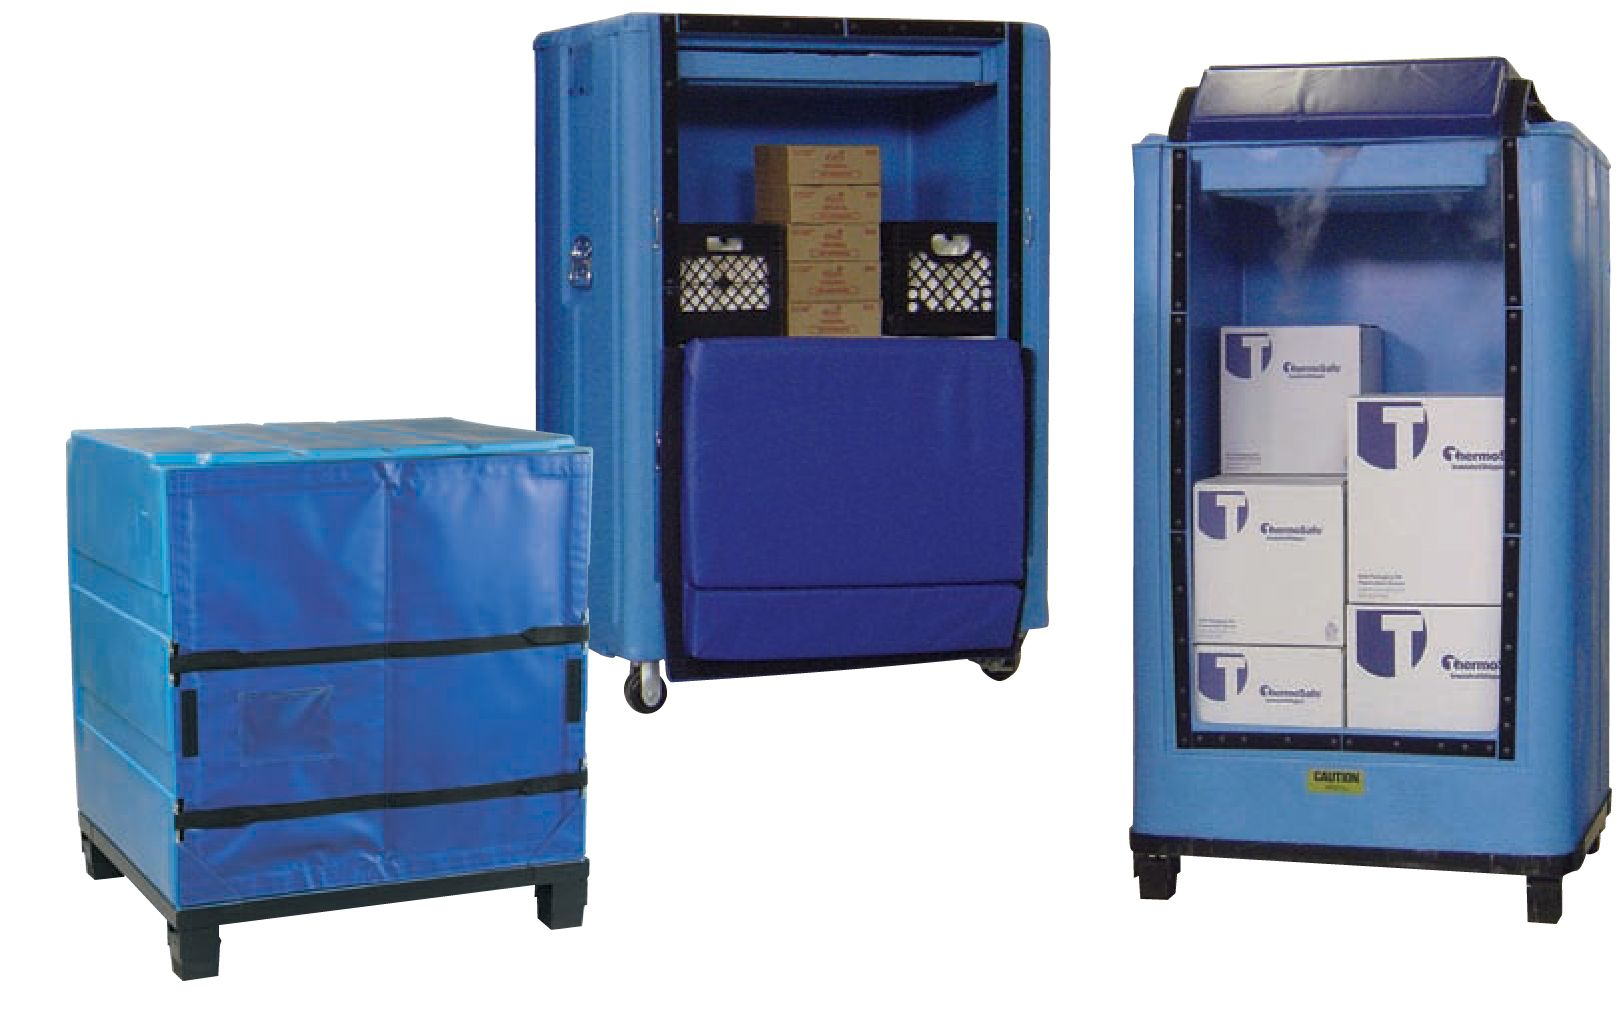 Upright Style Containers and Carts